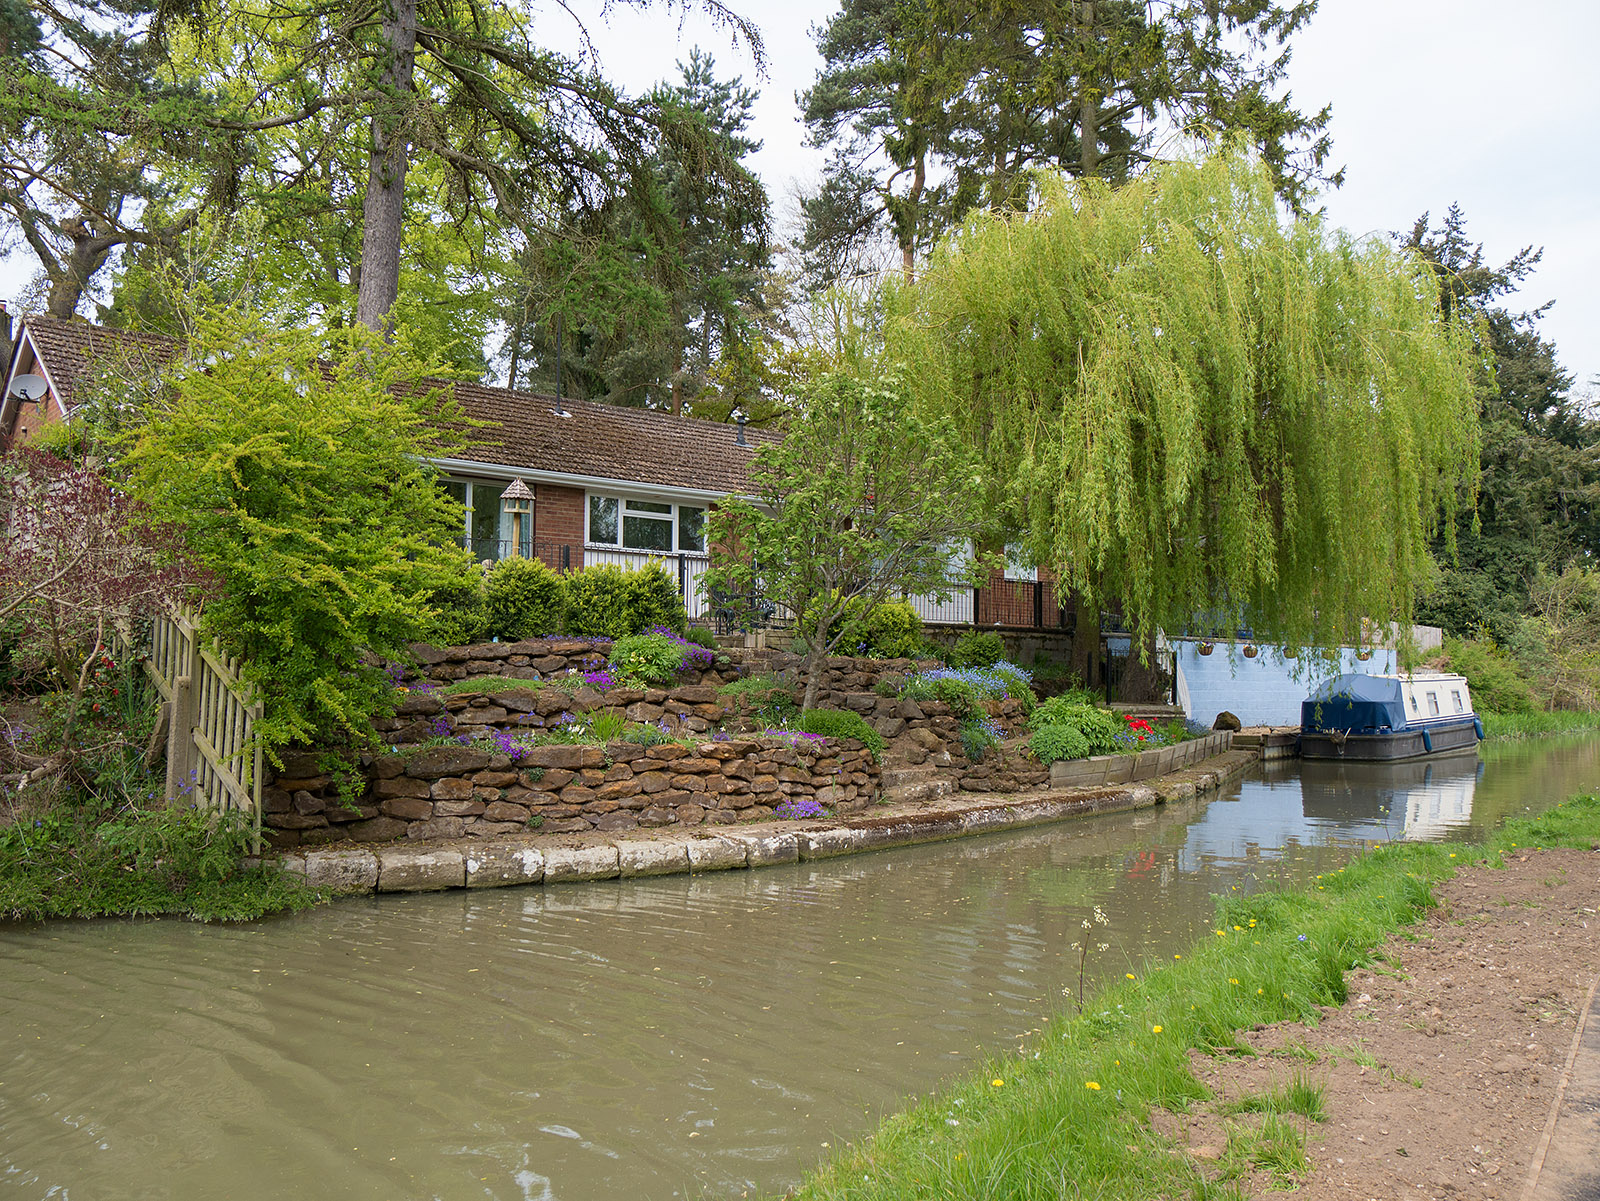 House with willow beside the narrowed canal